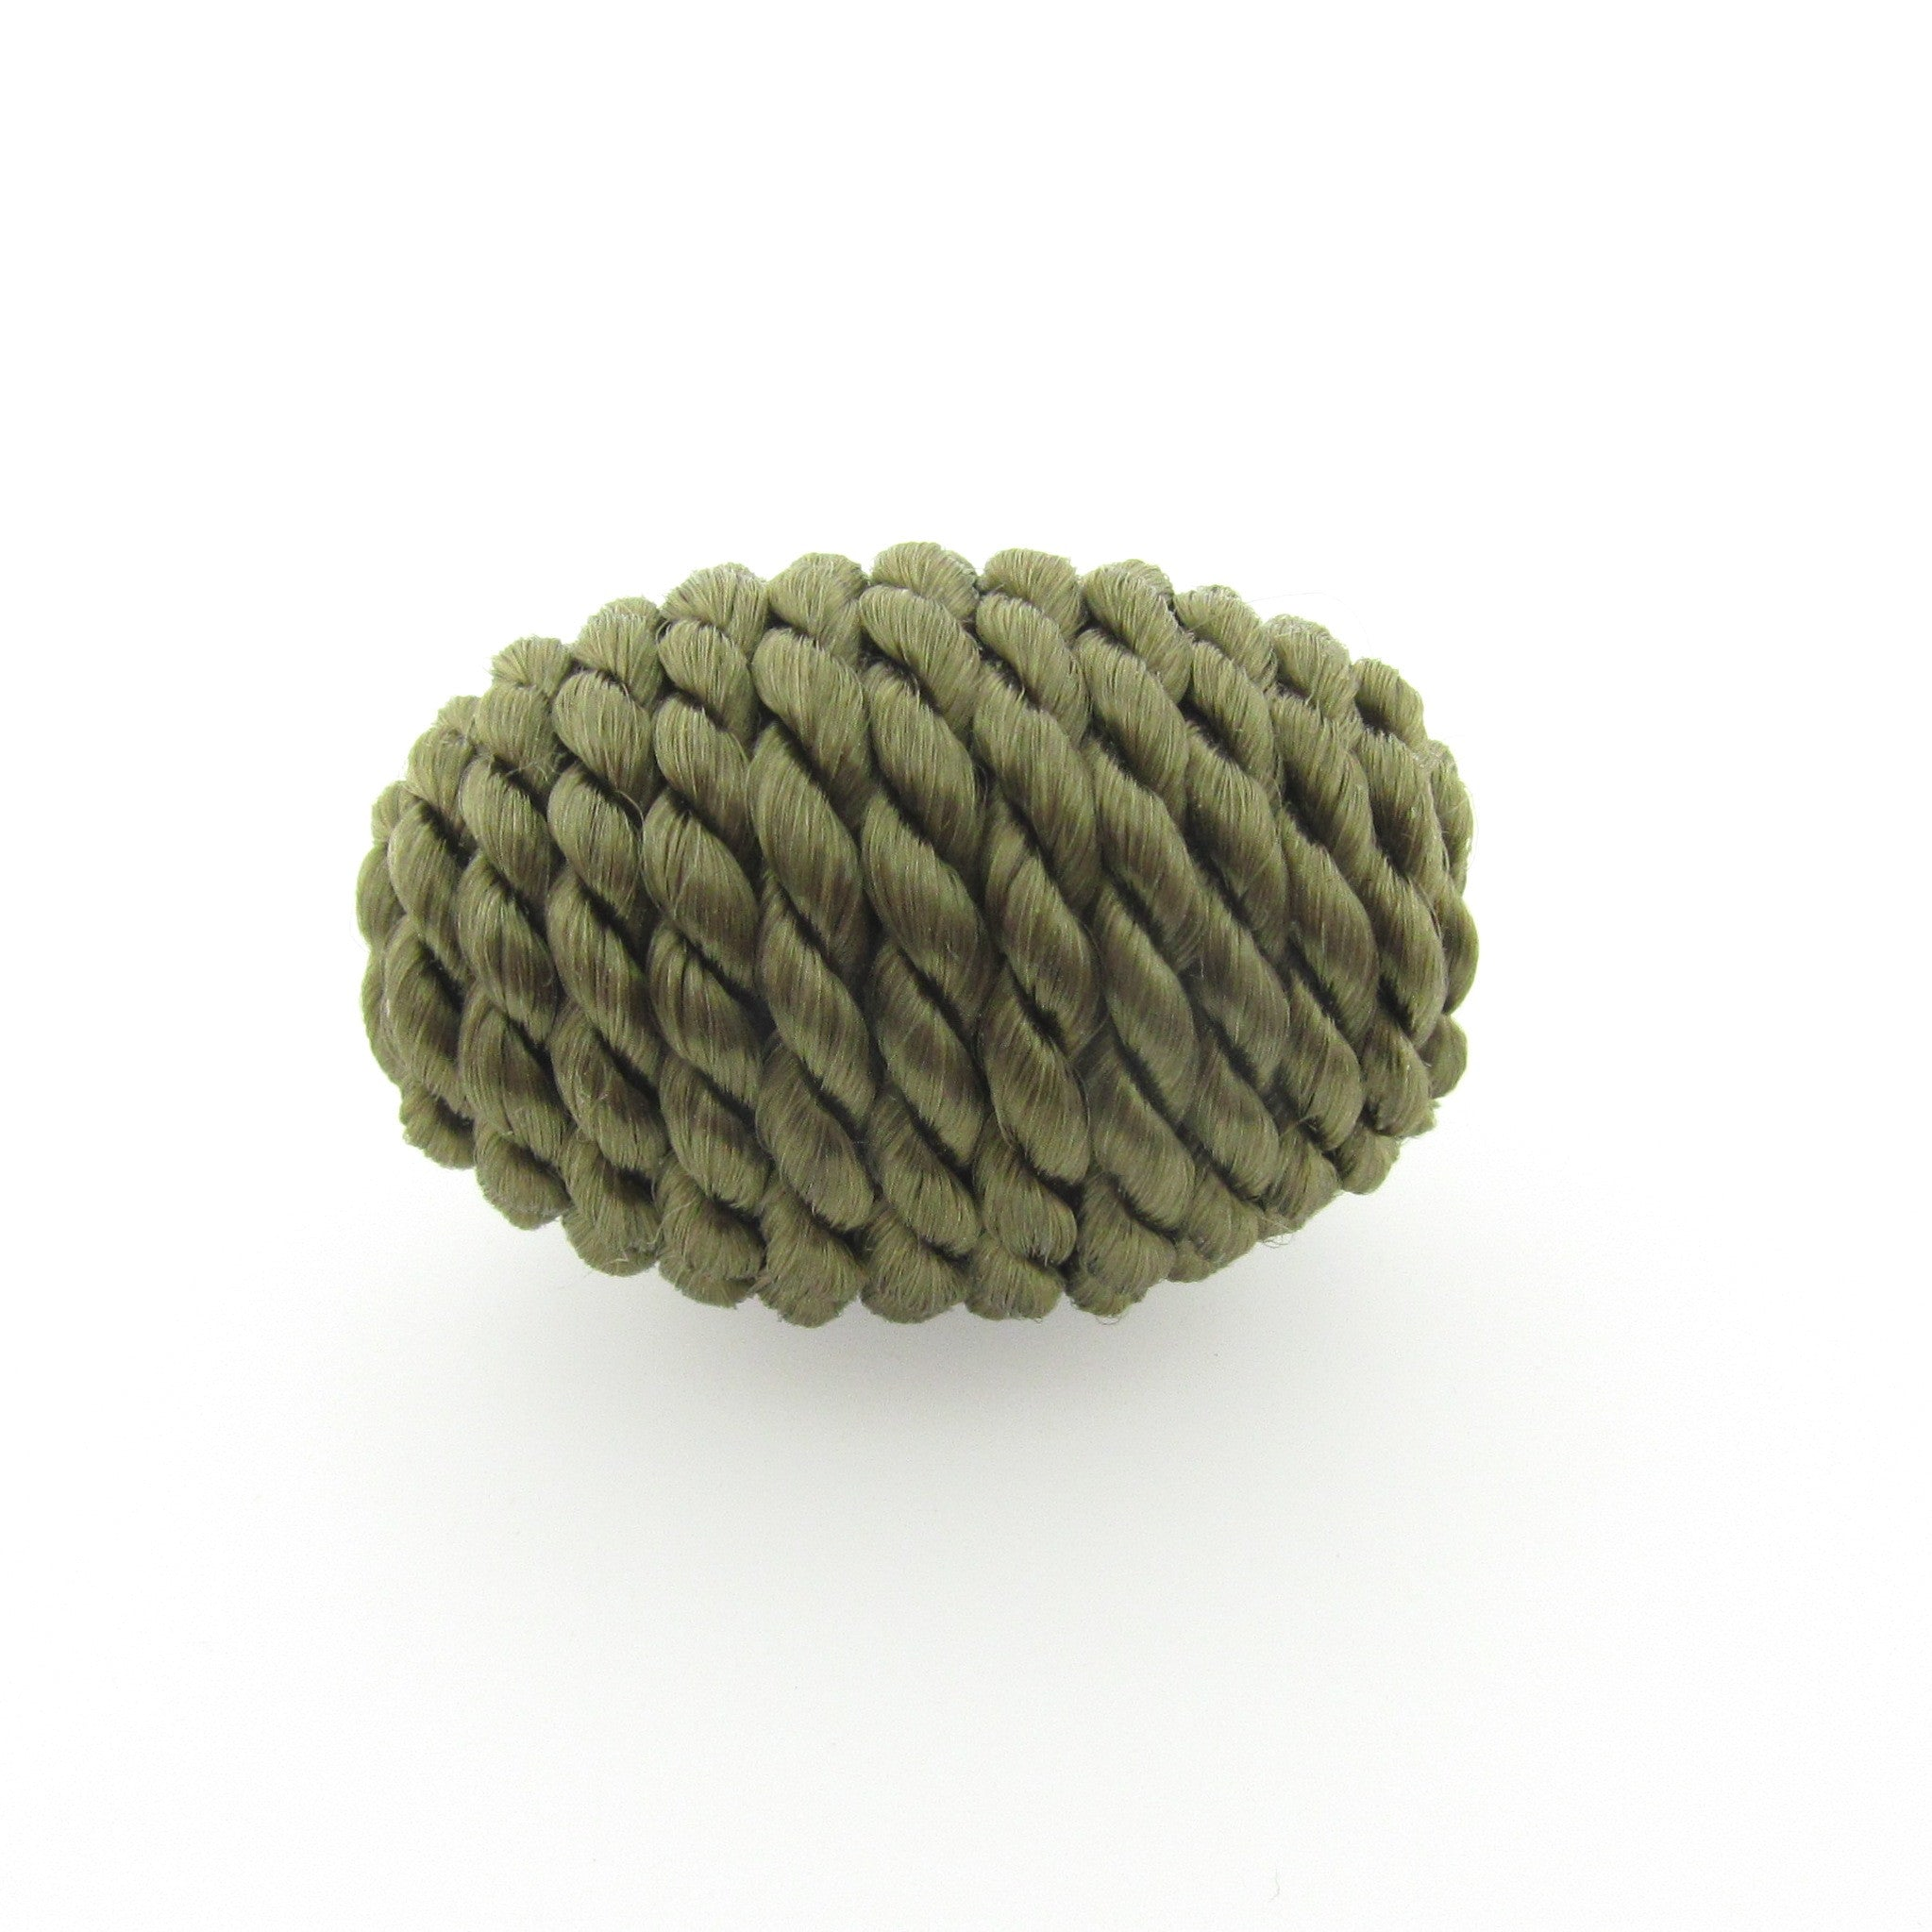 Small Olive Corded Bead (2 pieces)